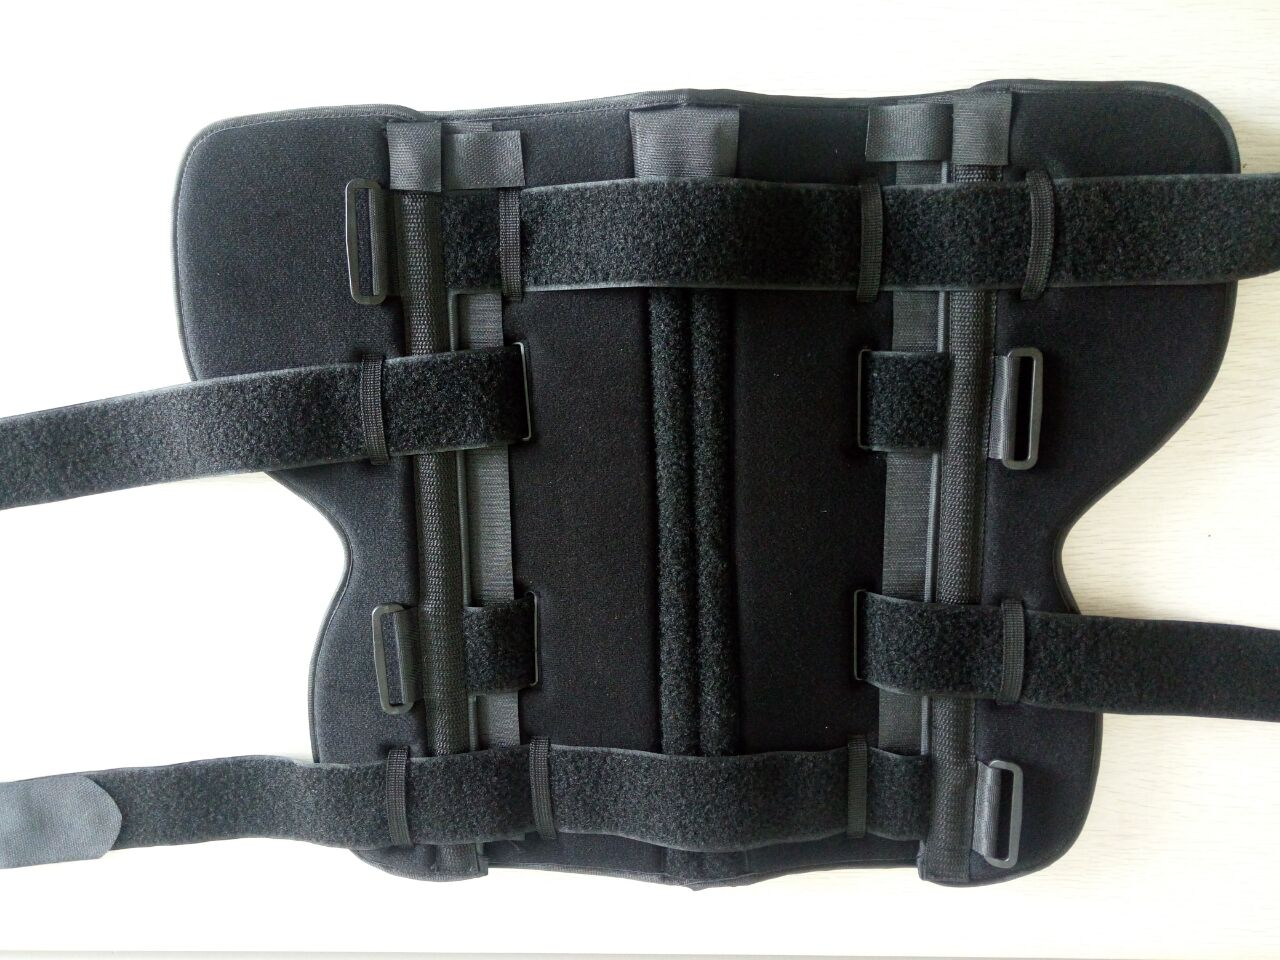 knee immobilizer with adjustable Velcro straps